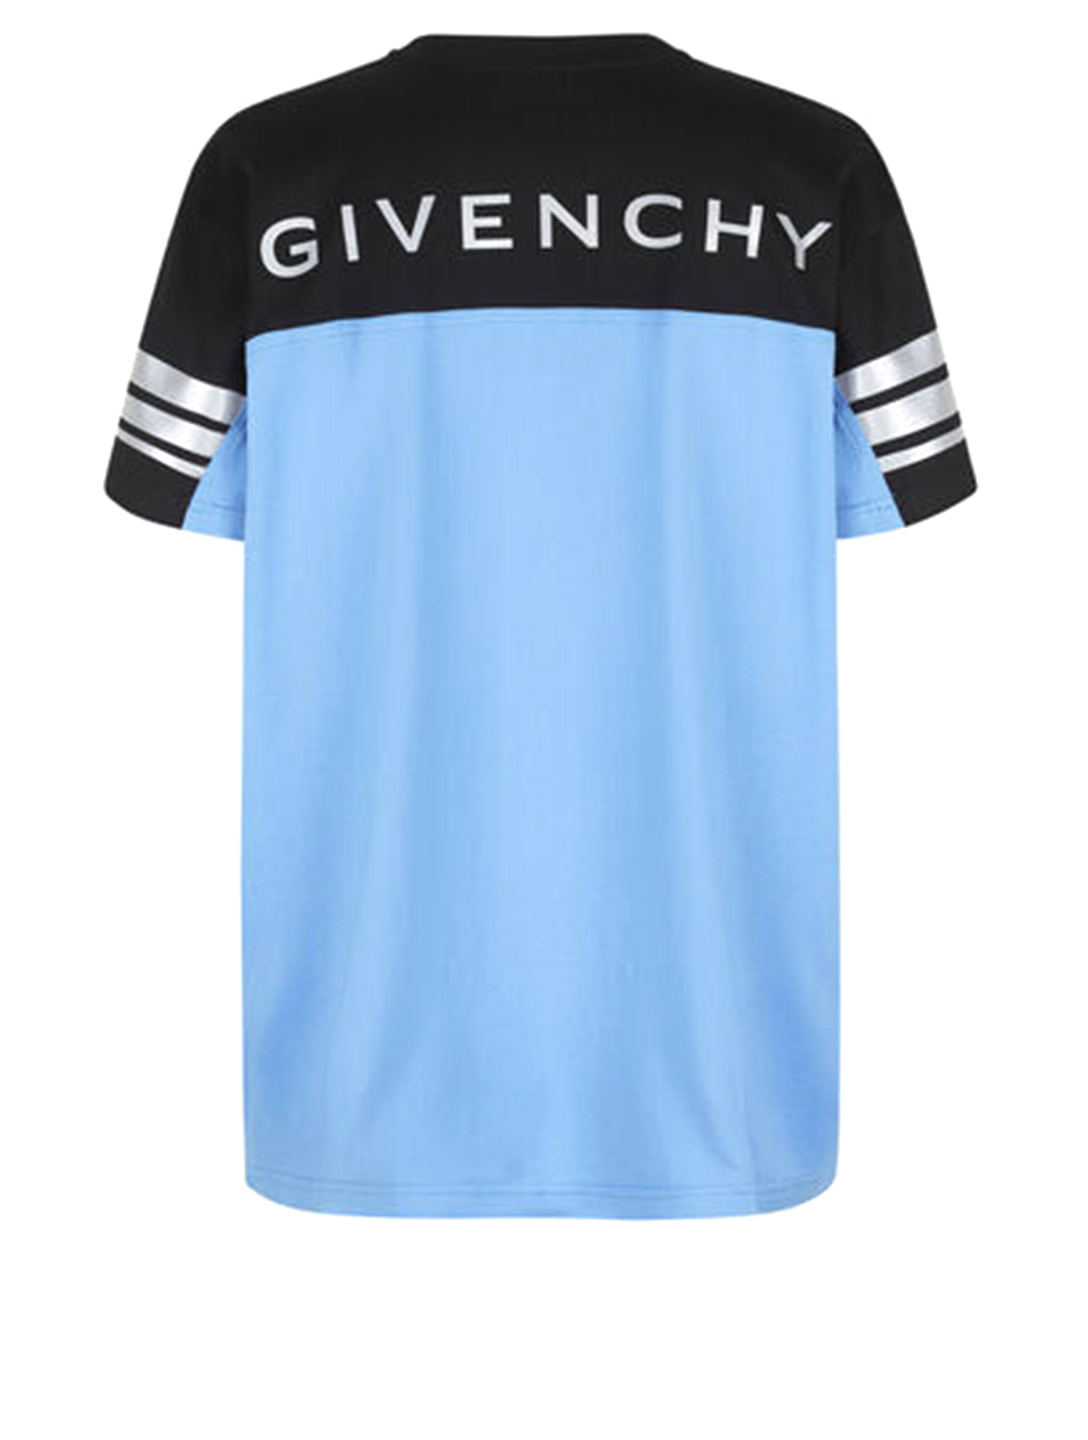 GIVENCHY Cotton Reflective T-Shirt Men's Black